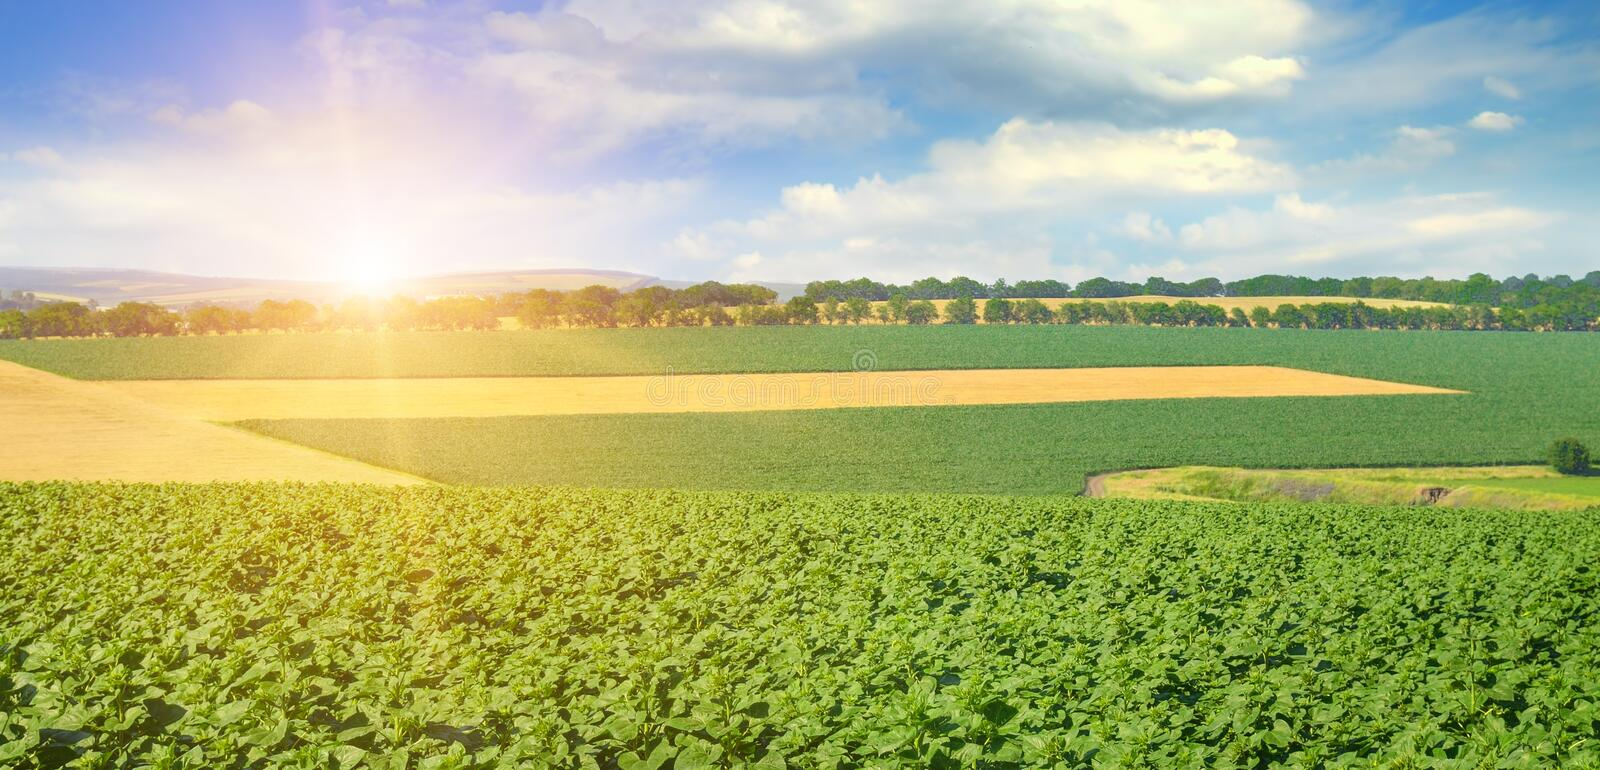 Feld sunflower sprout and sunrise on sky. Agricultural landscape. Wide photo. Feld sunflower sprouts and sunrise on sky. Agricultural landscape. Wide photo stock photo